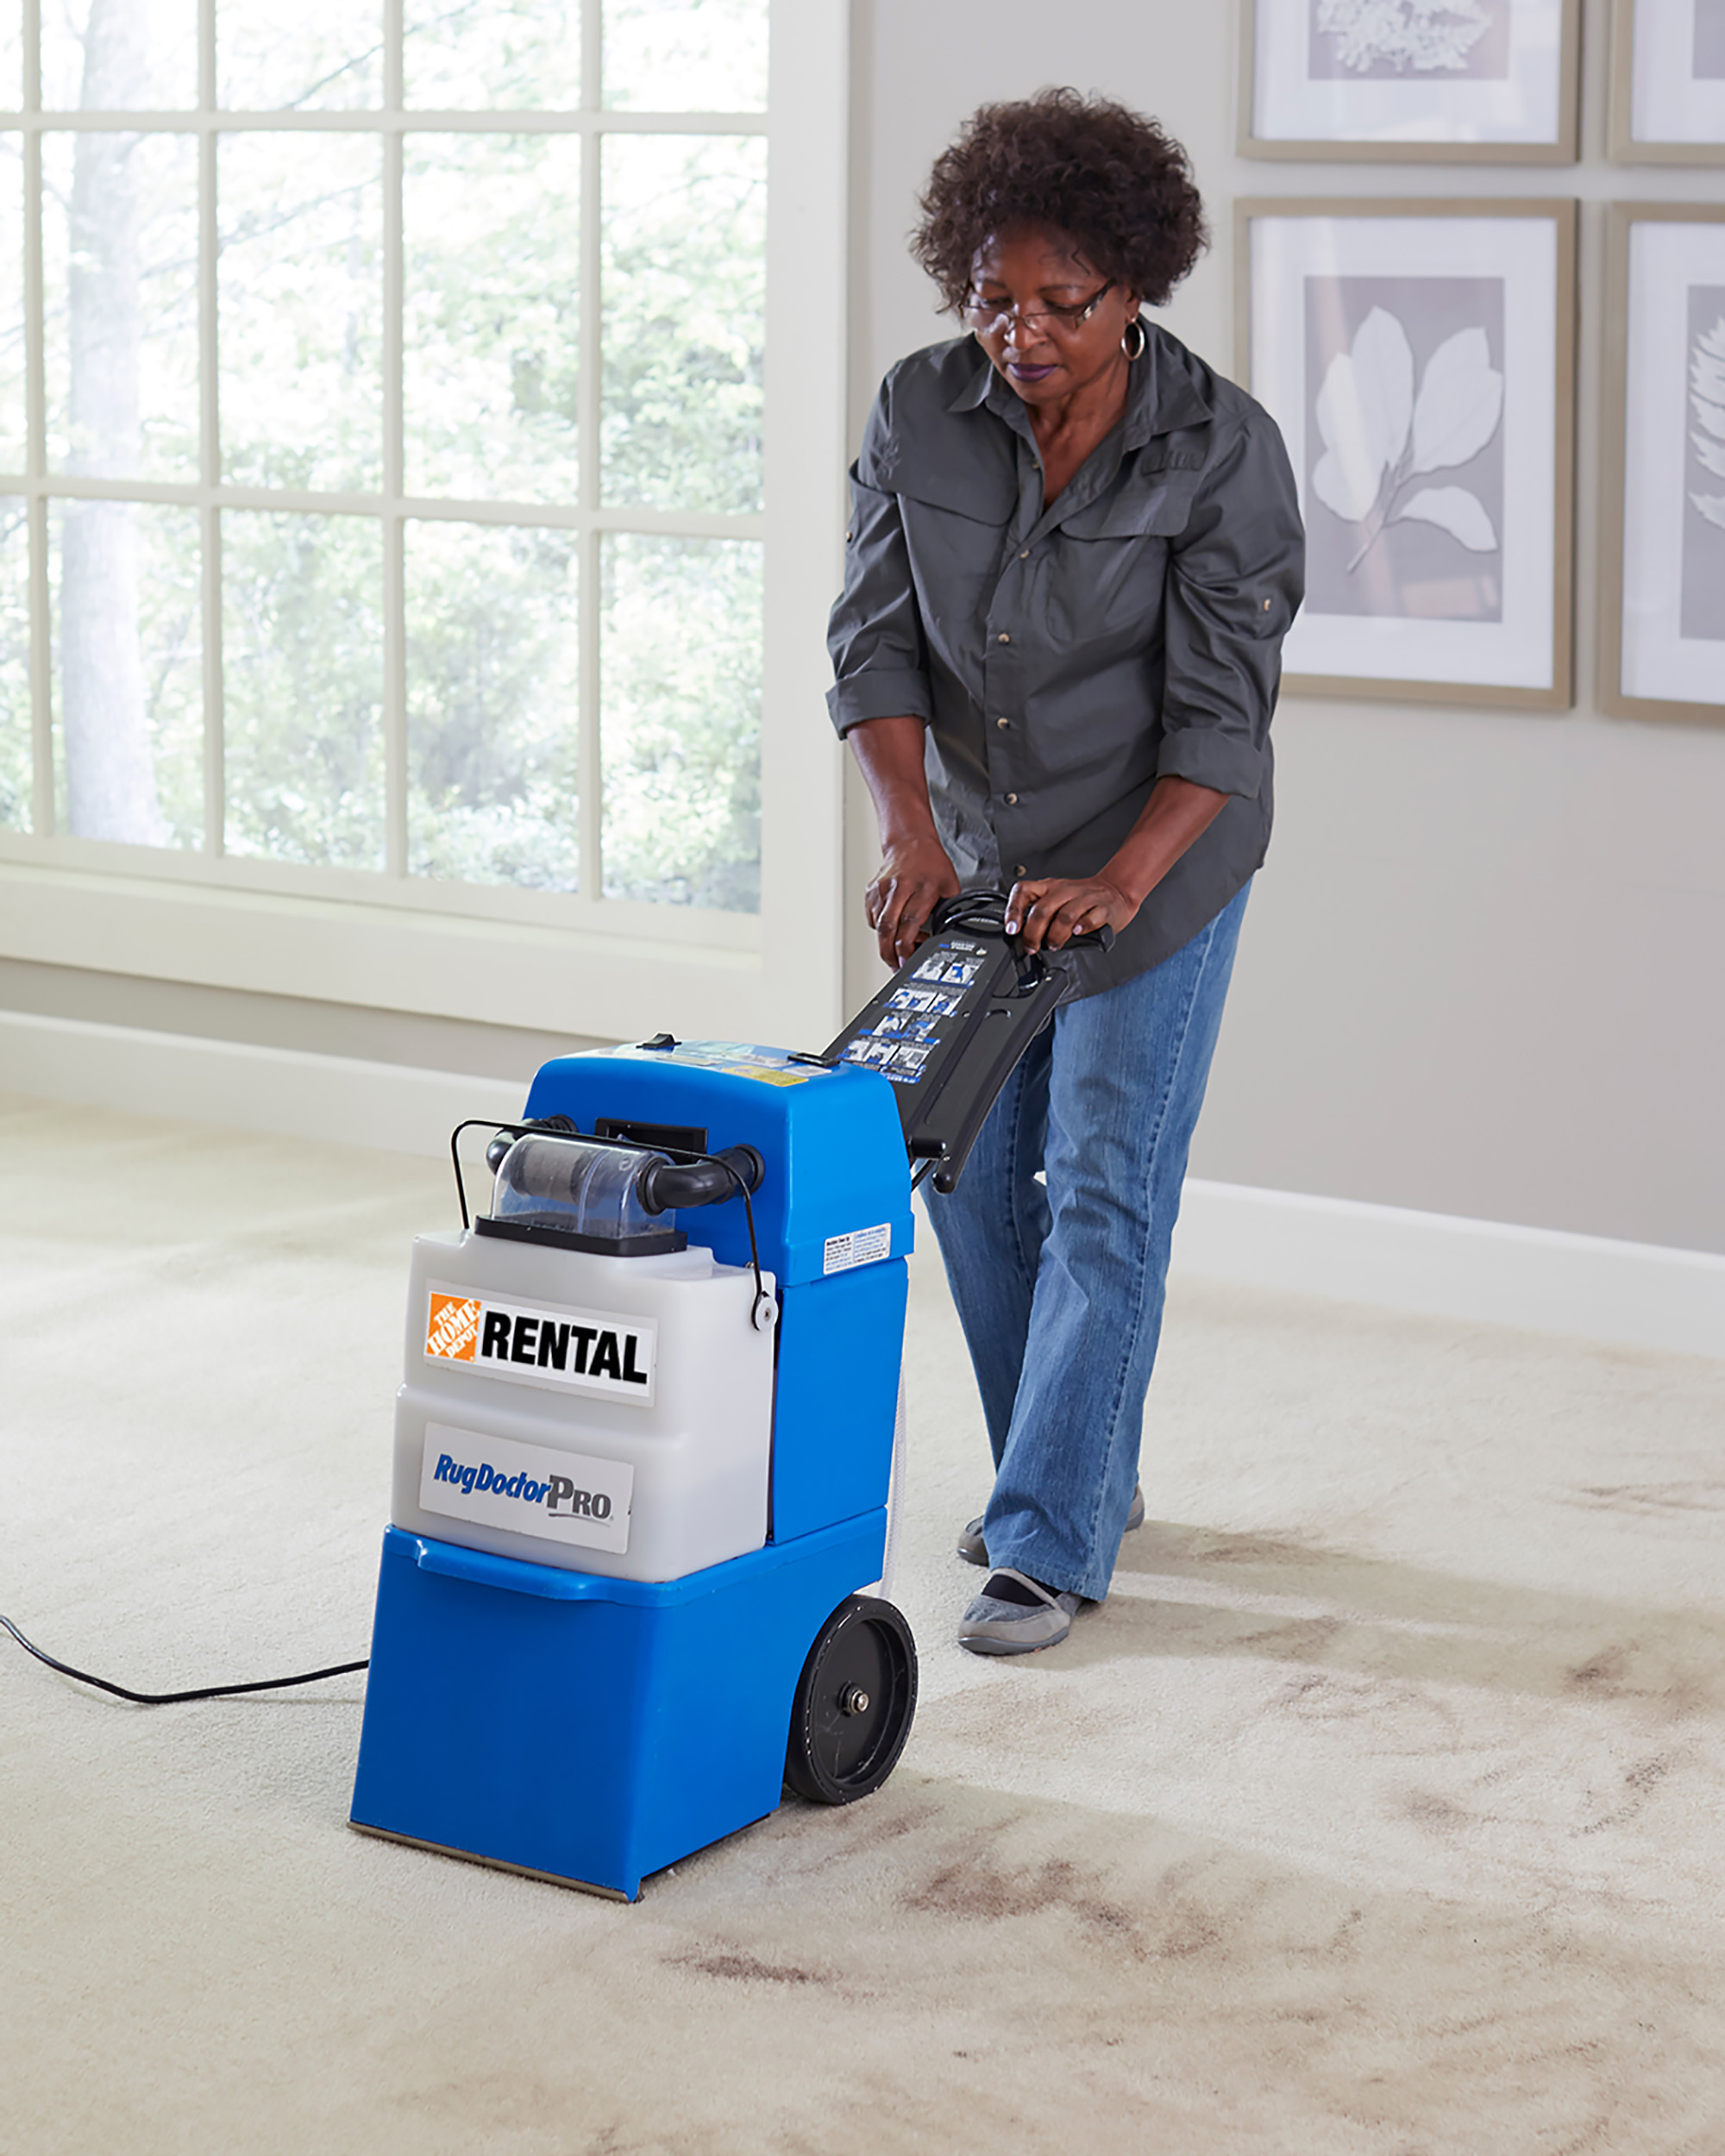 1031-rental_carpet_cleaner_diy_02.jpg